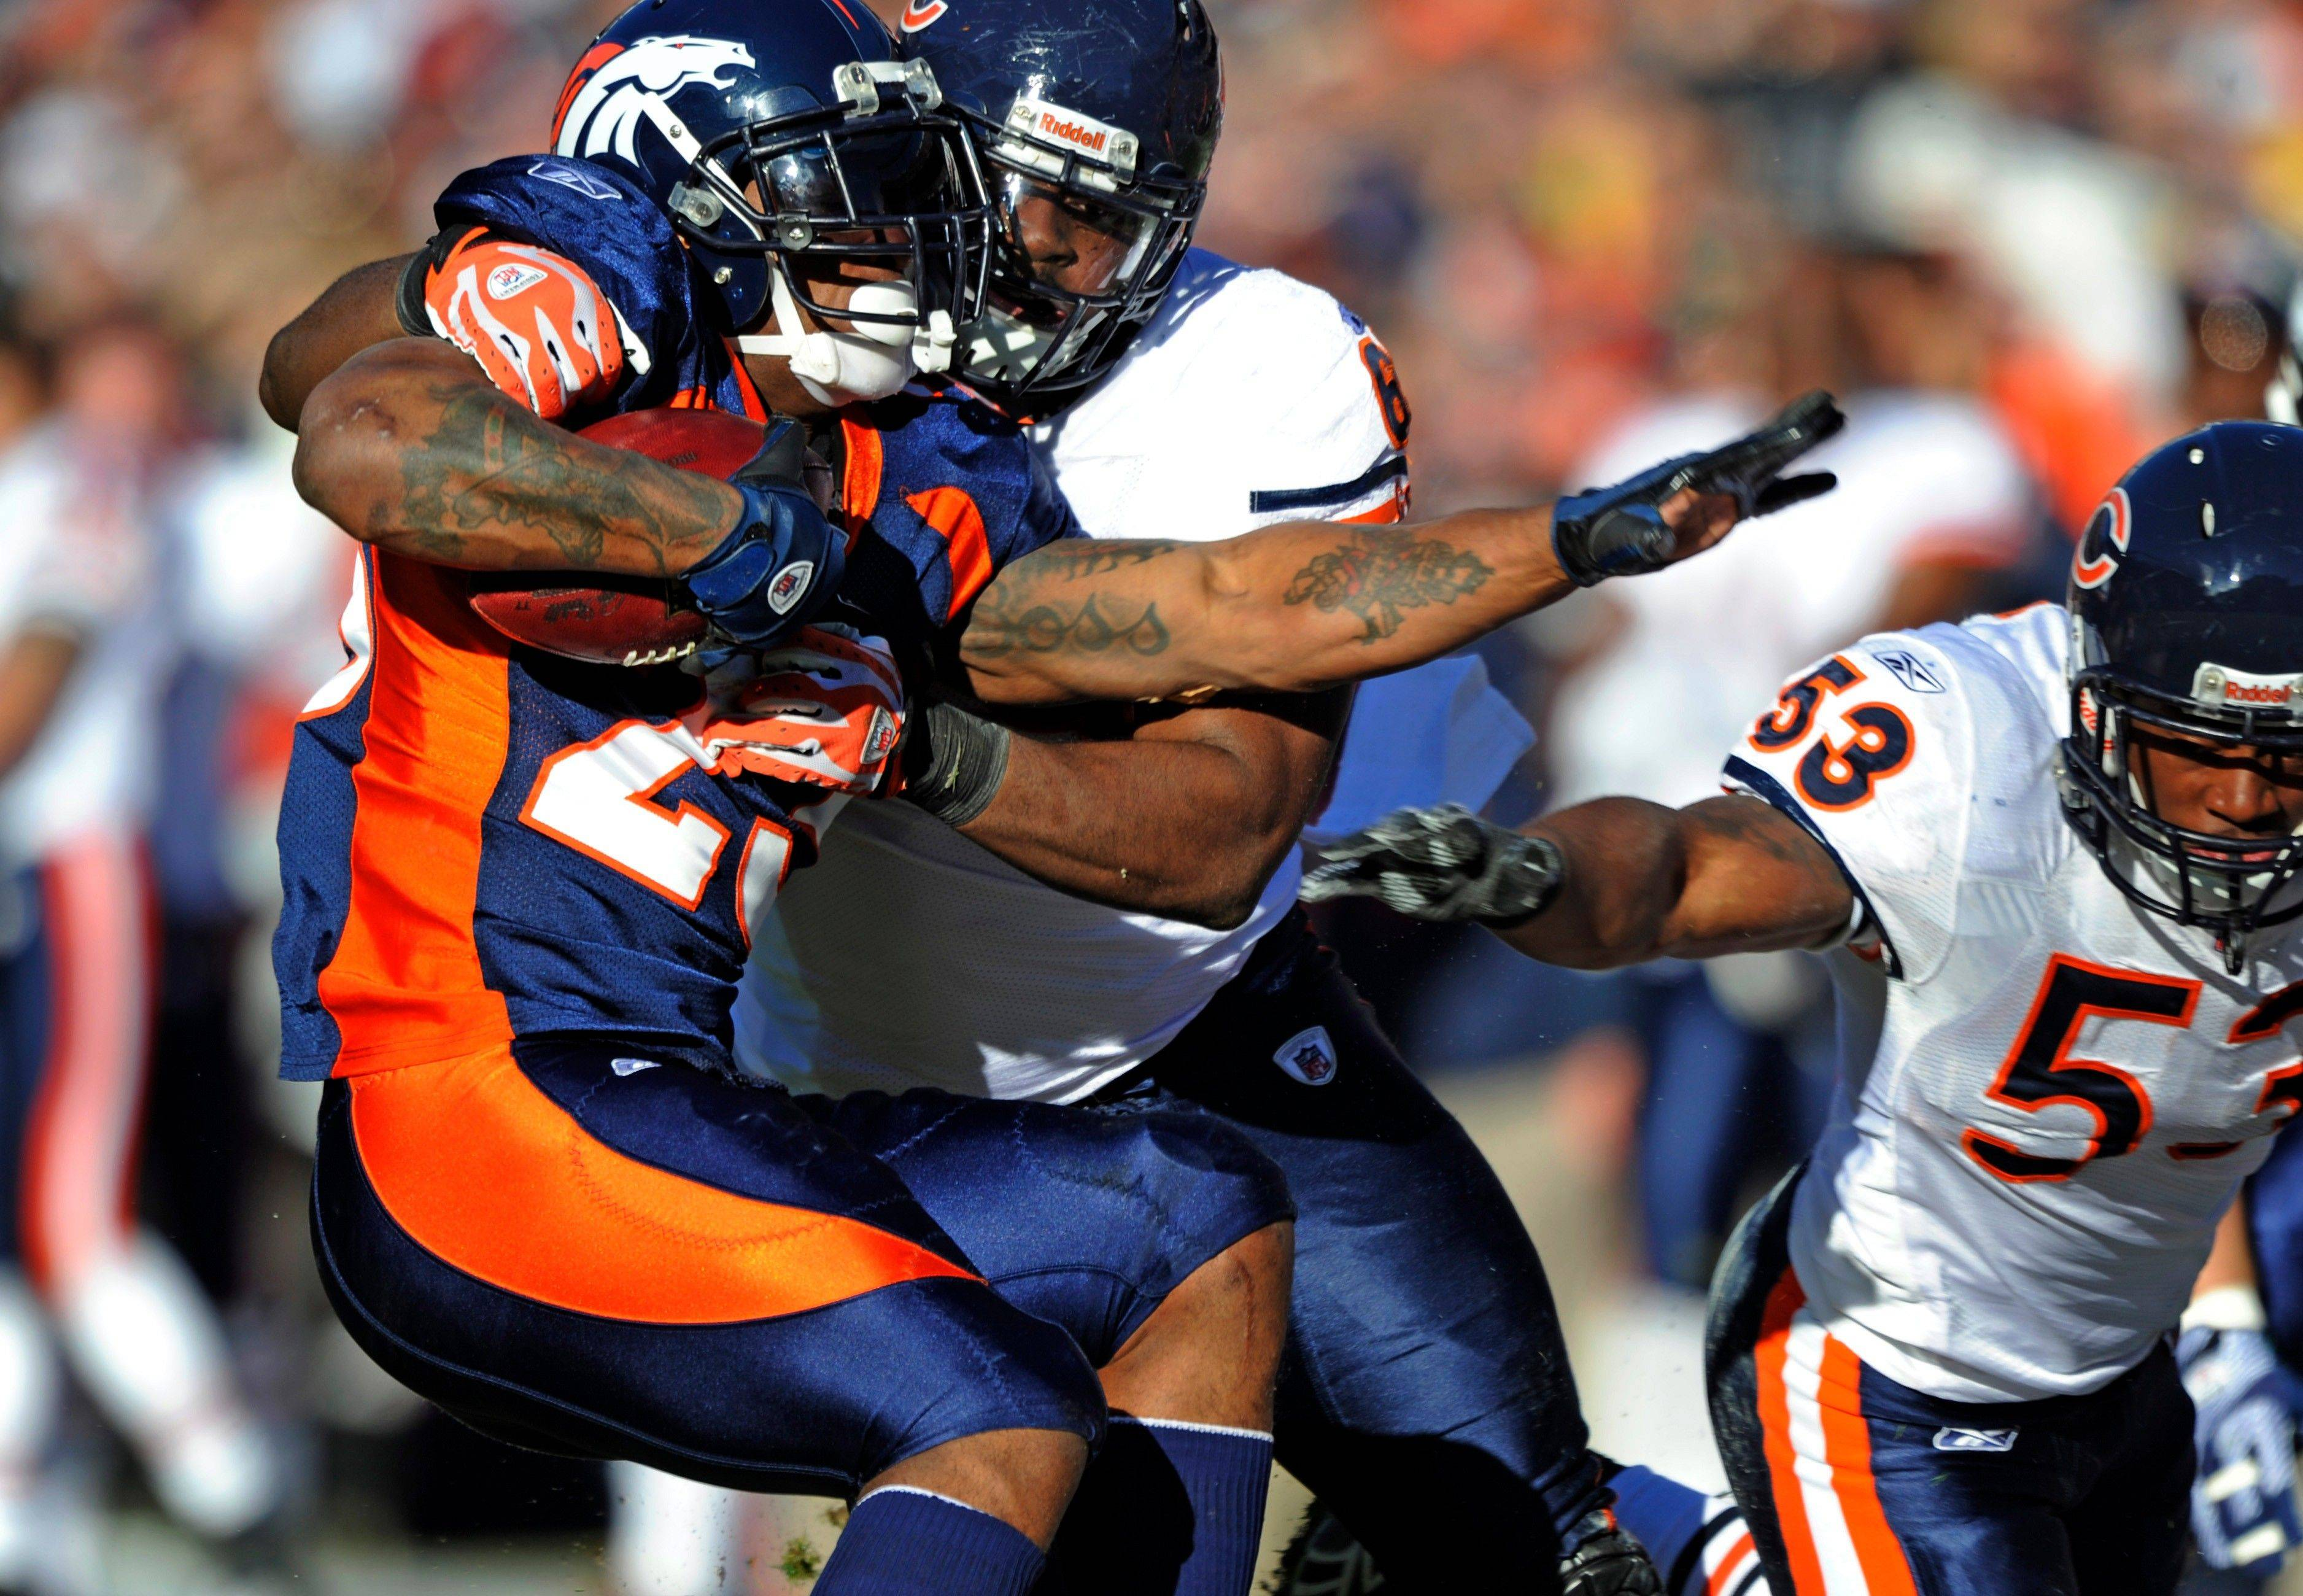 Denver Broncos running back Willis McGahee, left, is pulled down by Chicago Bears' Henry Melton, rear, during the first quarter,